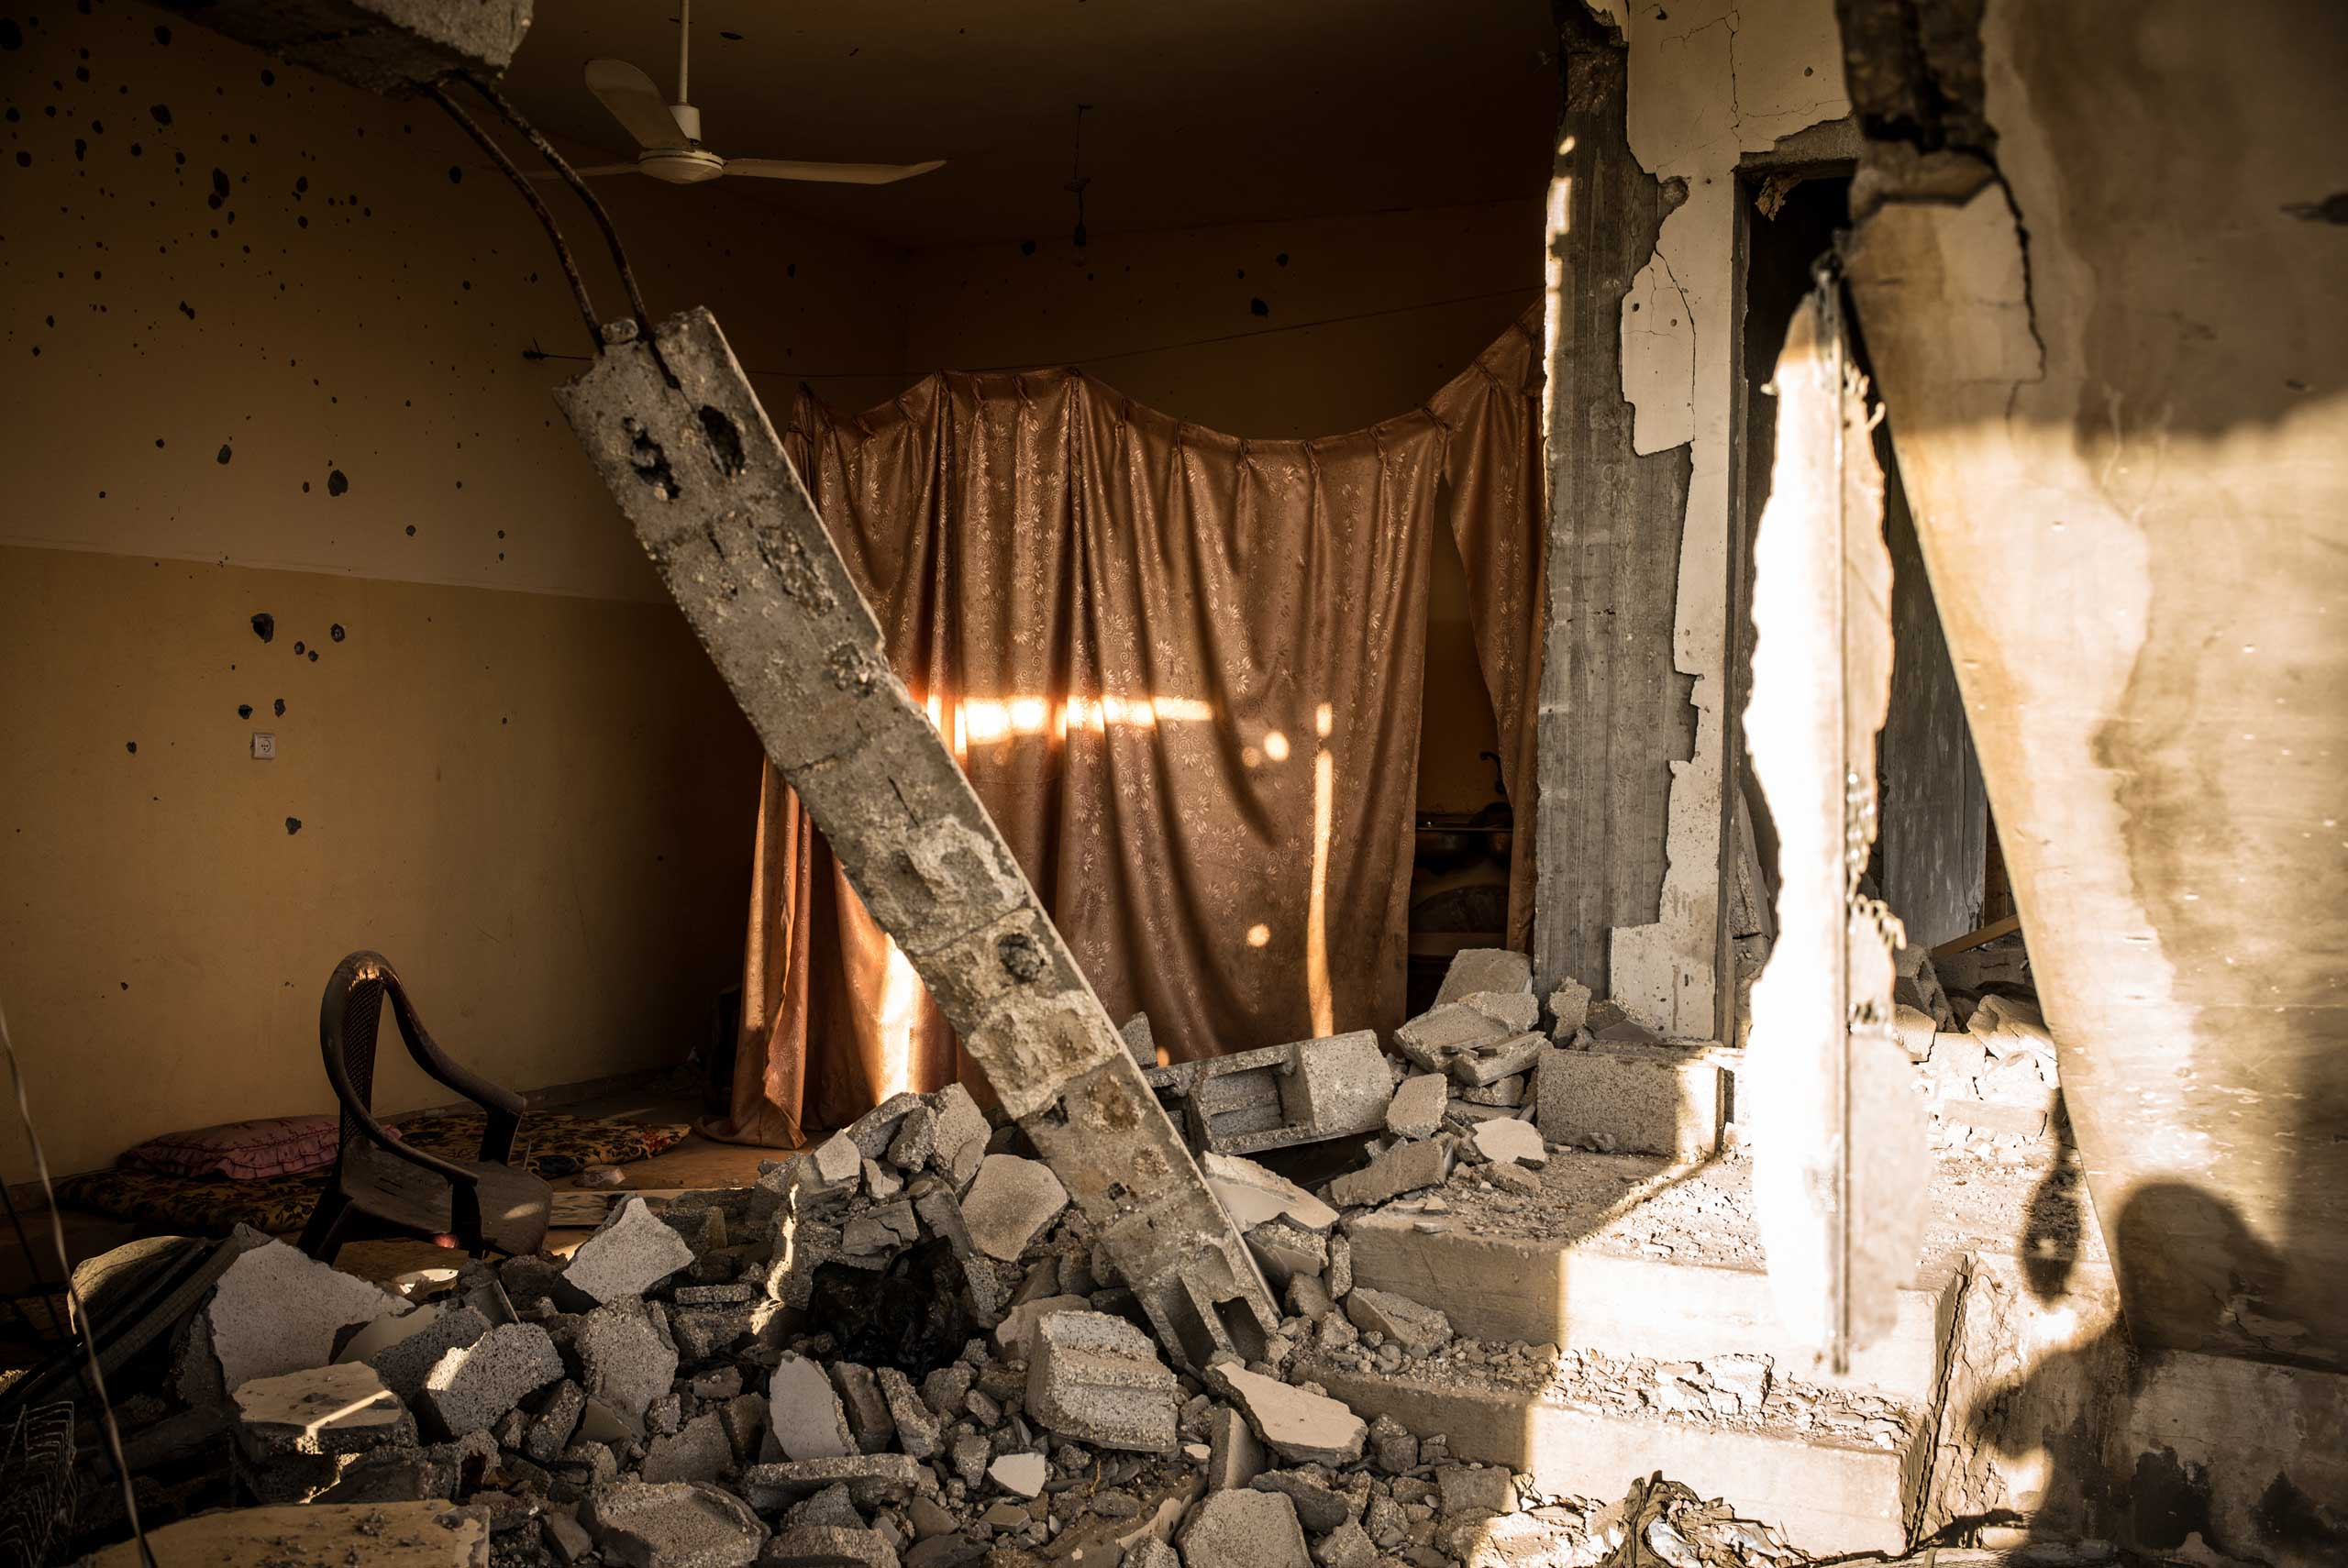 A gutted kitchen in one of the destroyed buildings in Khan Yunis, in the southeast of the Gaza Strip. Blankets are used to create some privacy. The Gaza Strip, December 2014.